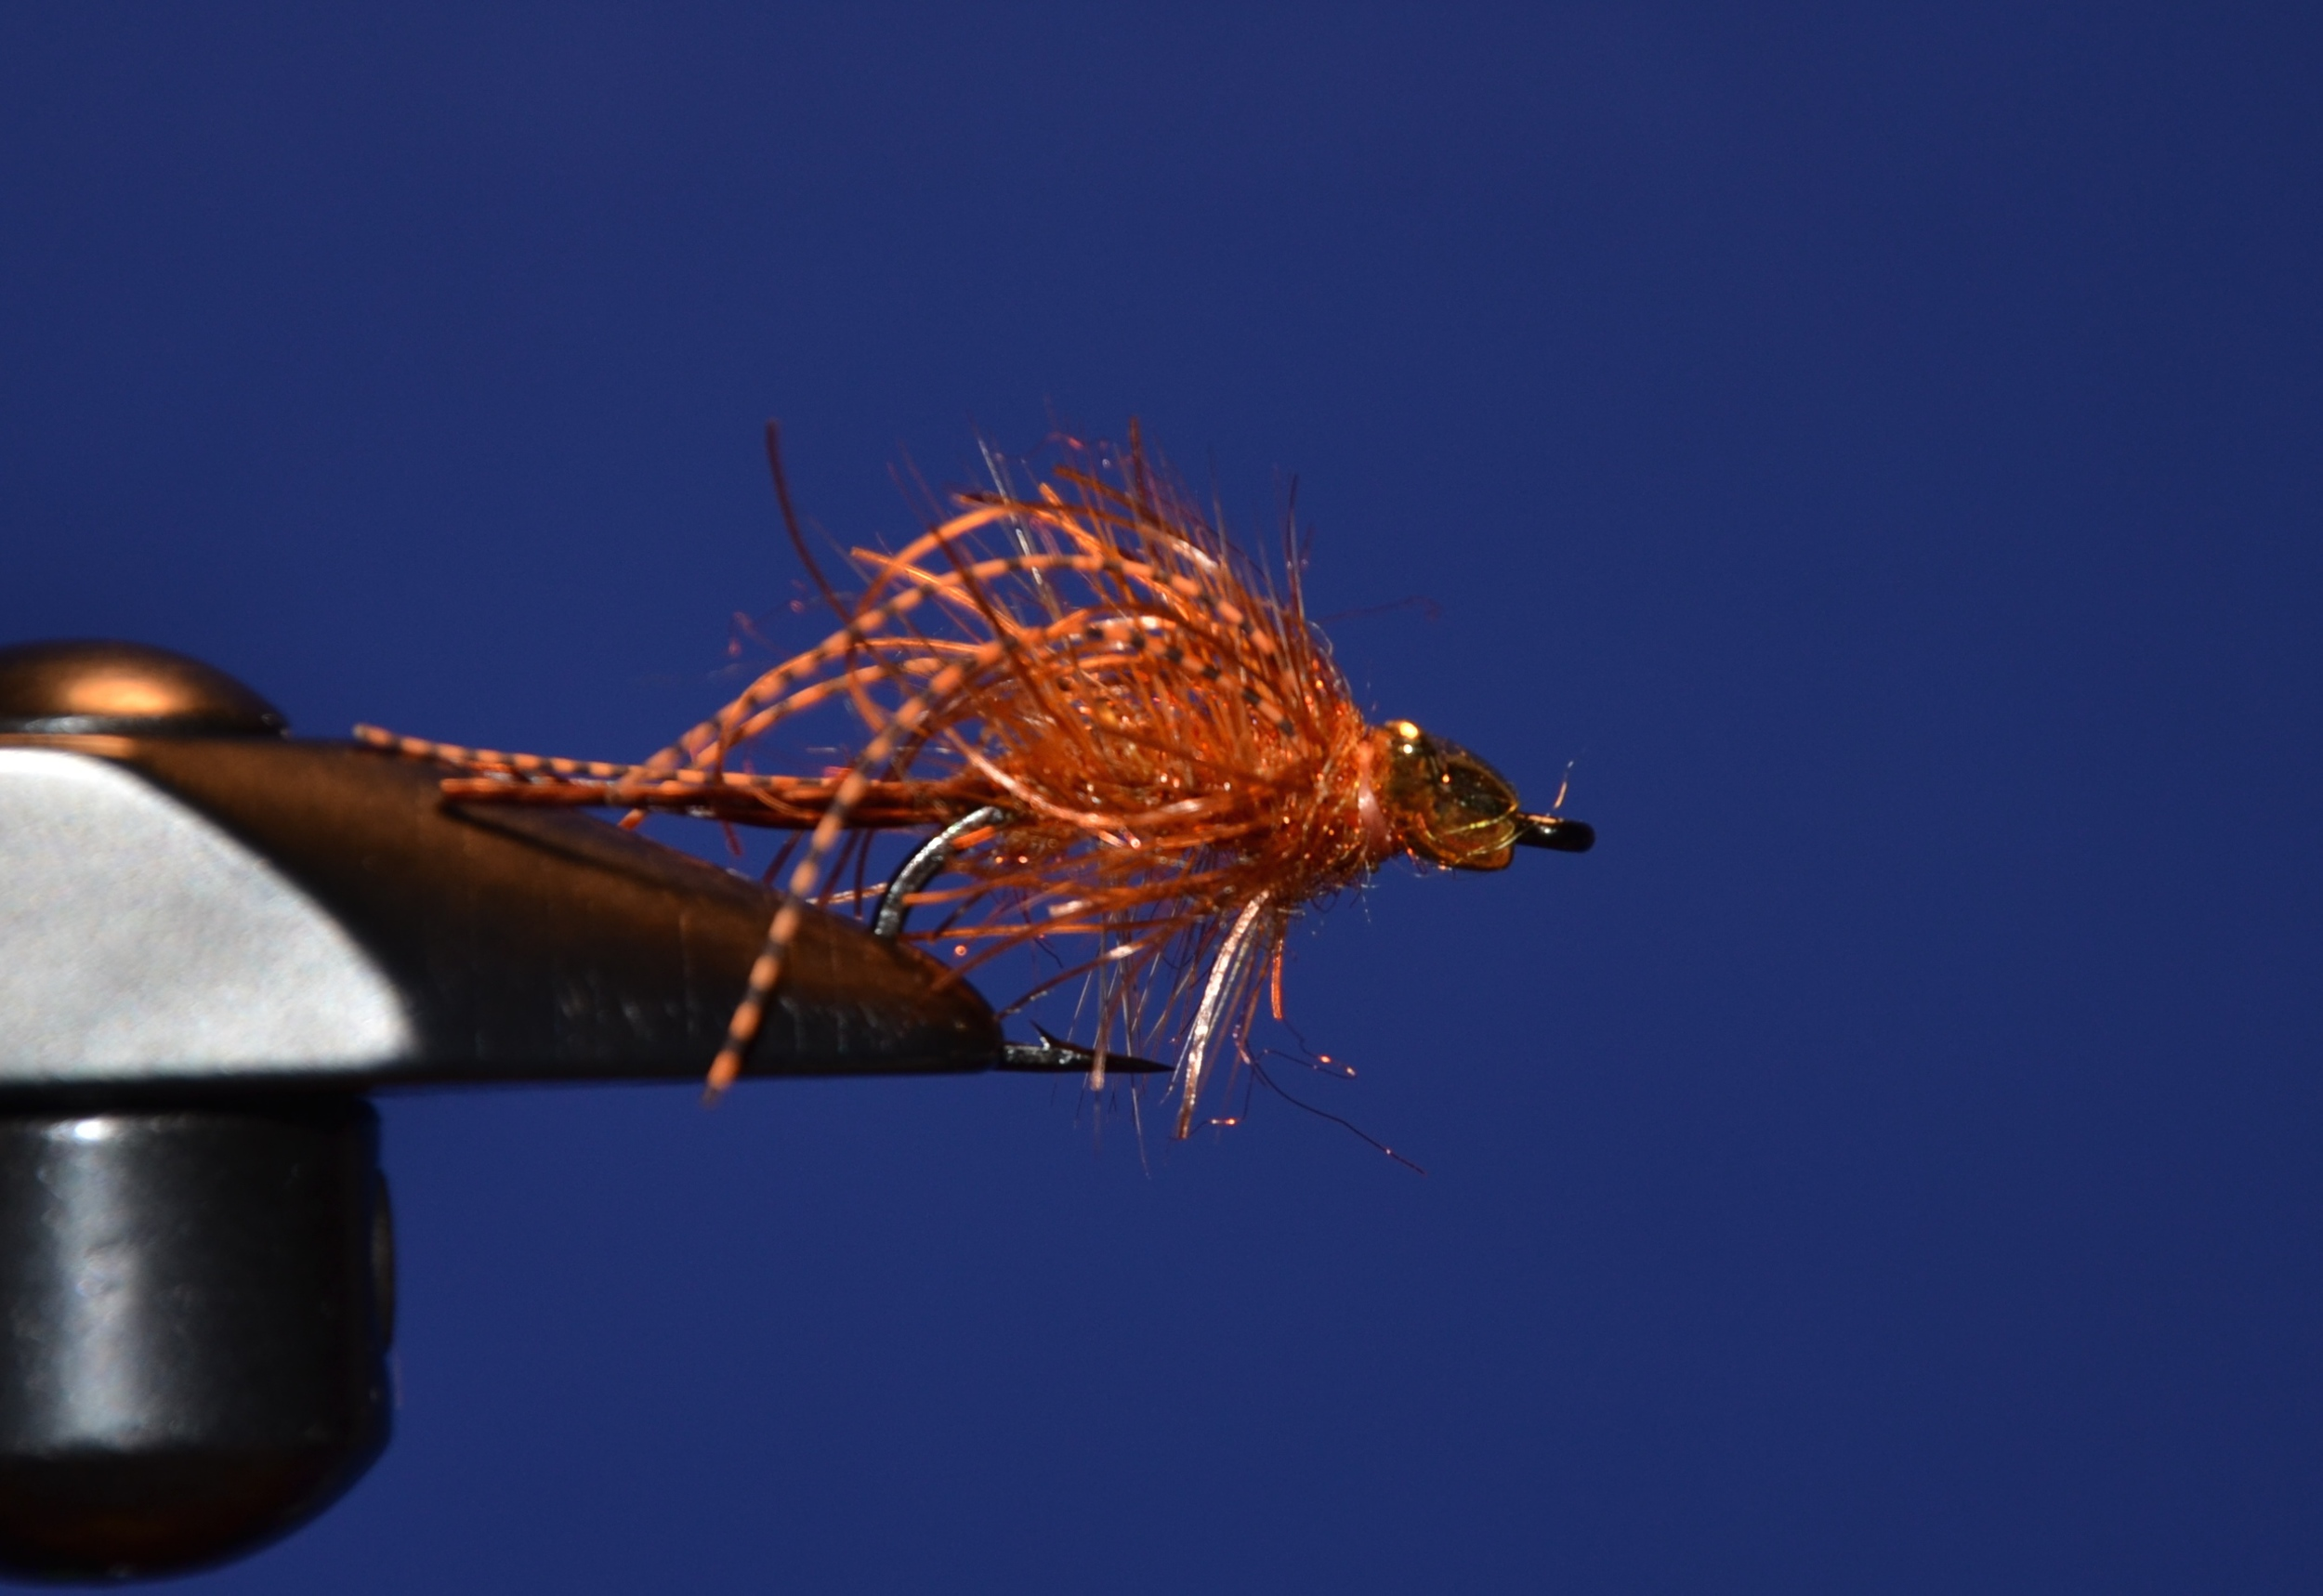 Add another few turns of Carp Dub and whip finish and trim. Make sure the widest part of the bead is facing up. It allows the fly to ride hook point up, which is ideal for the rubber lips.